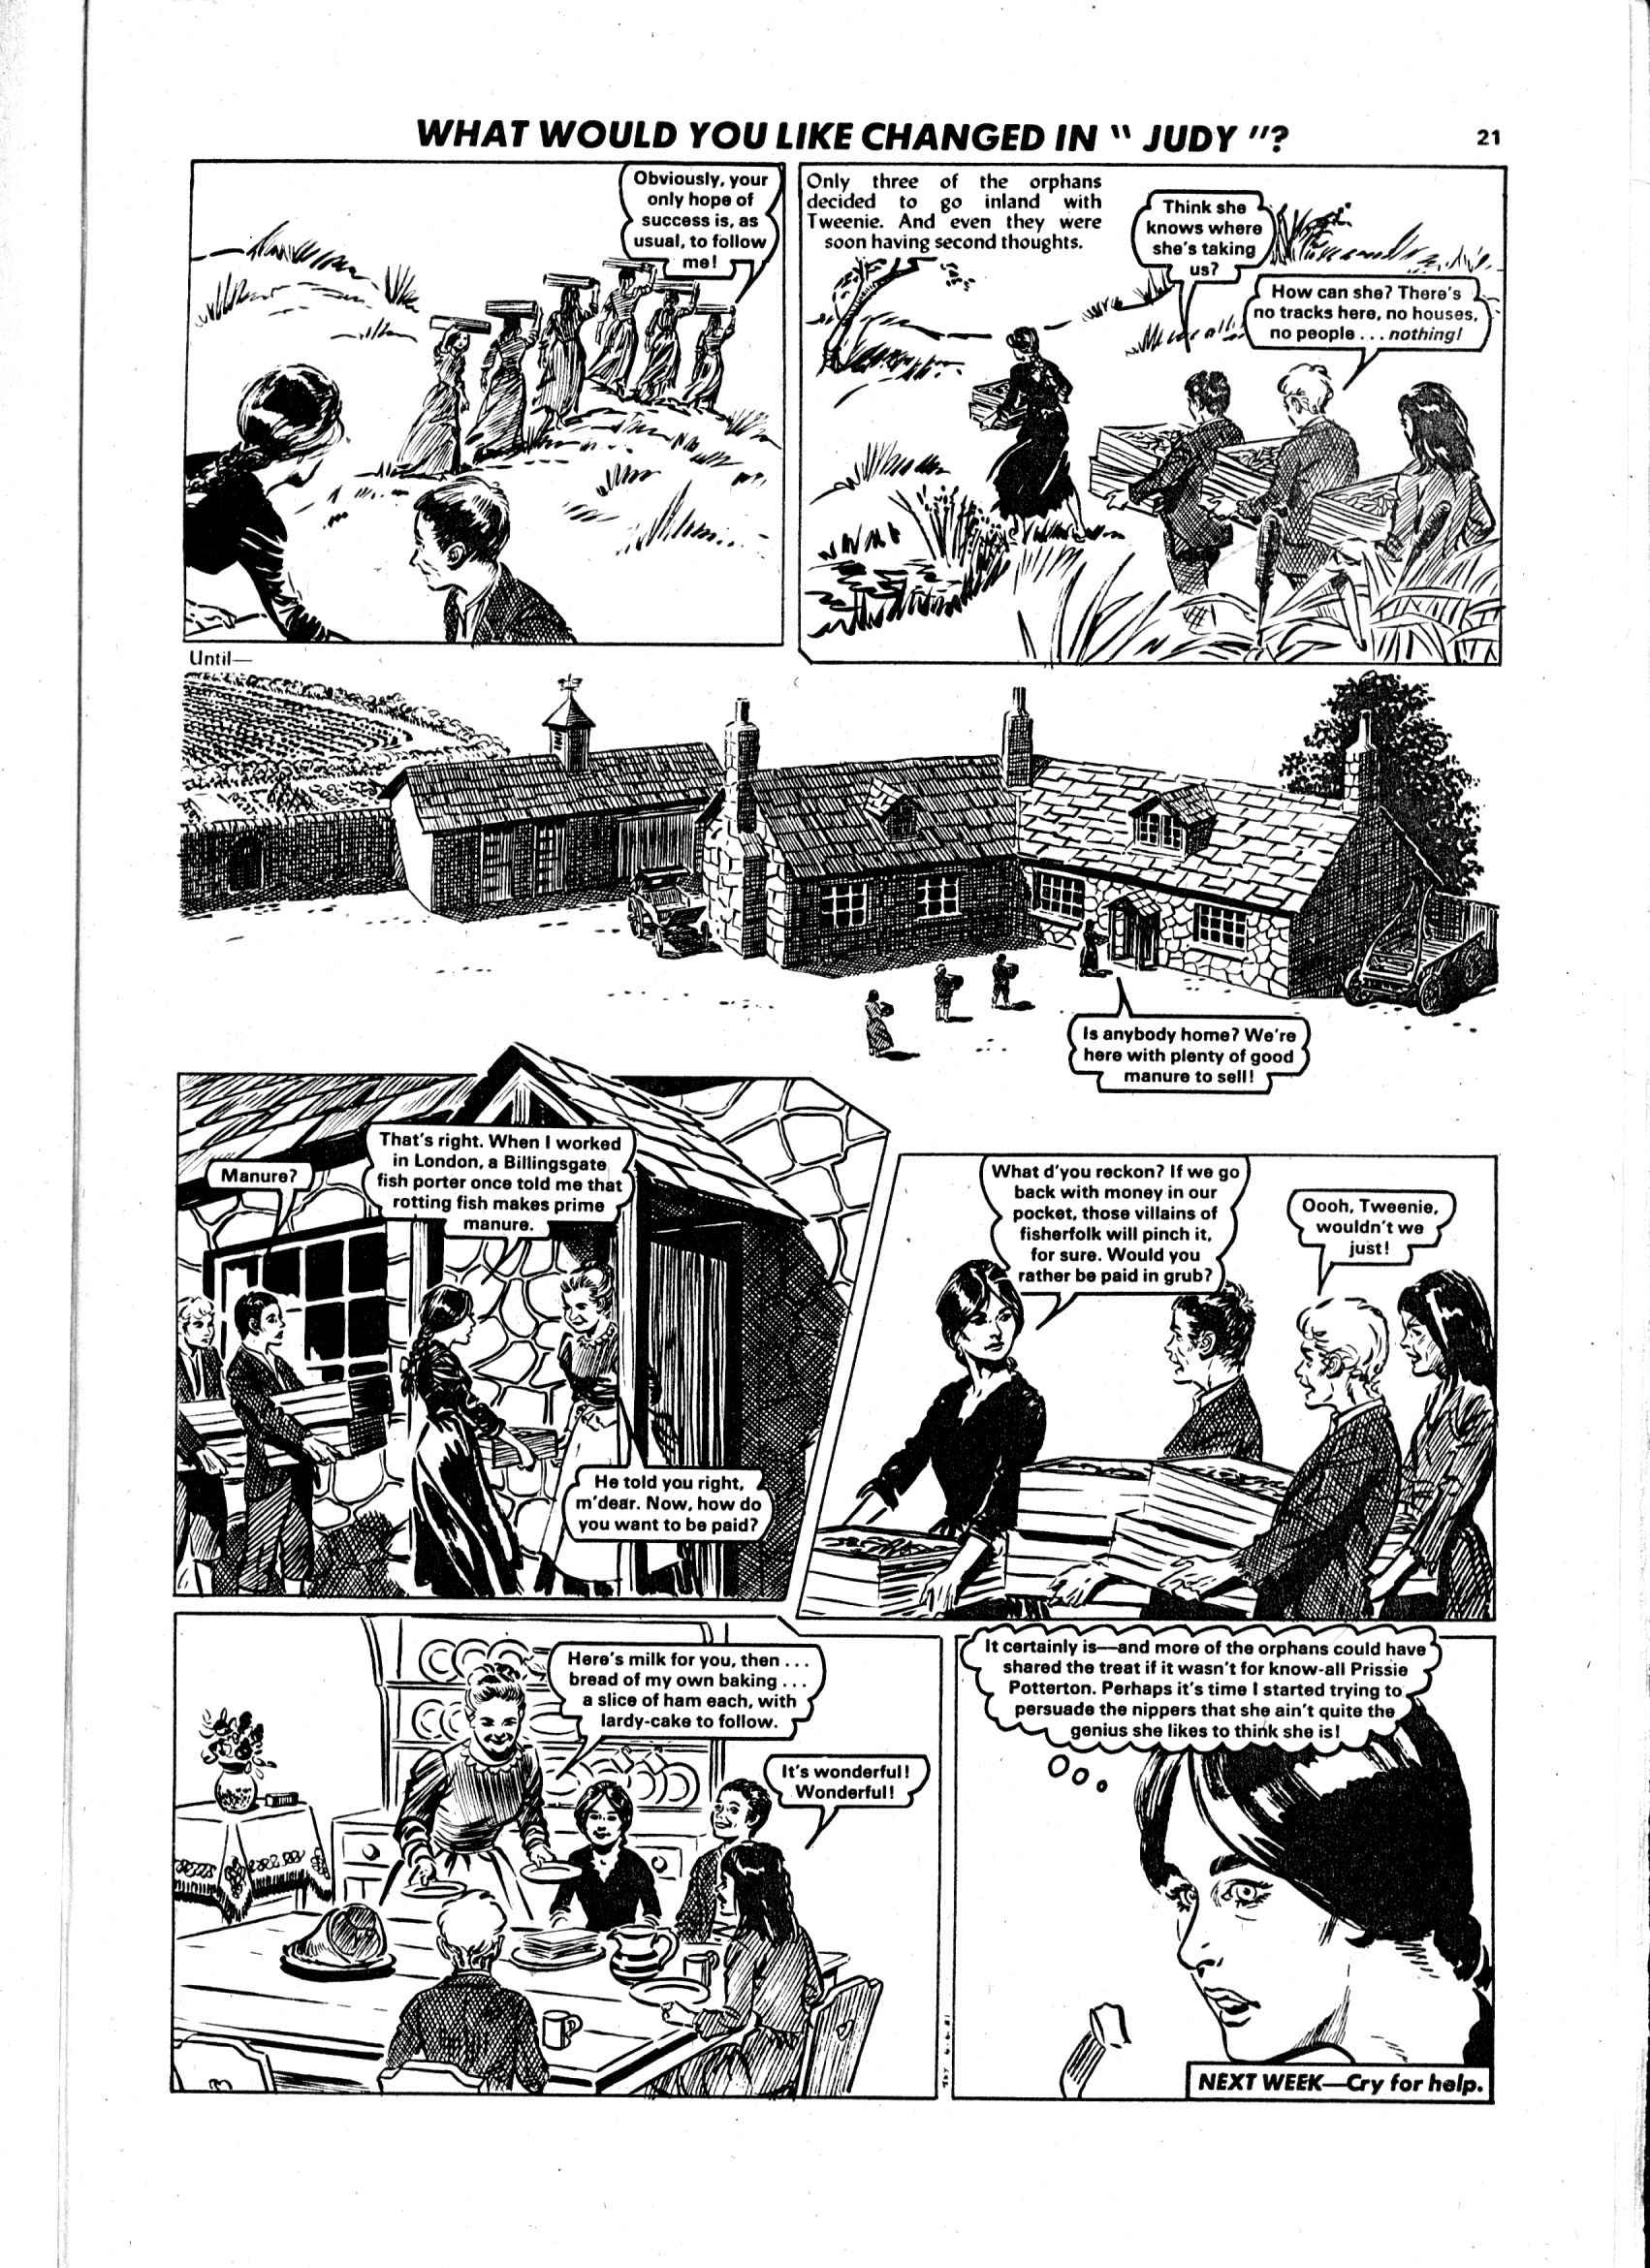 Read online Judy comic -  Issue #1108 - 21